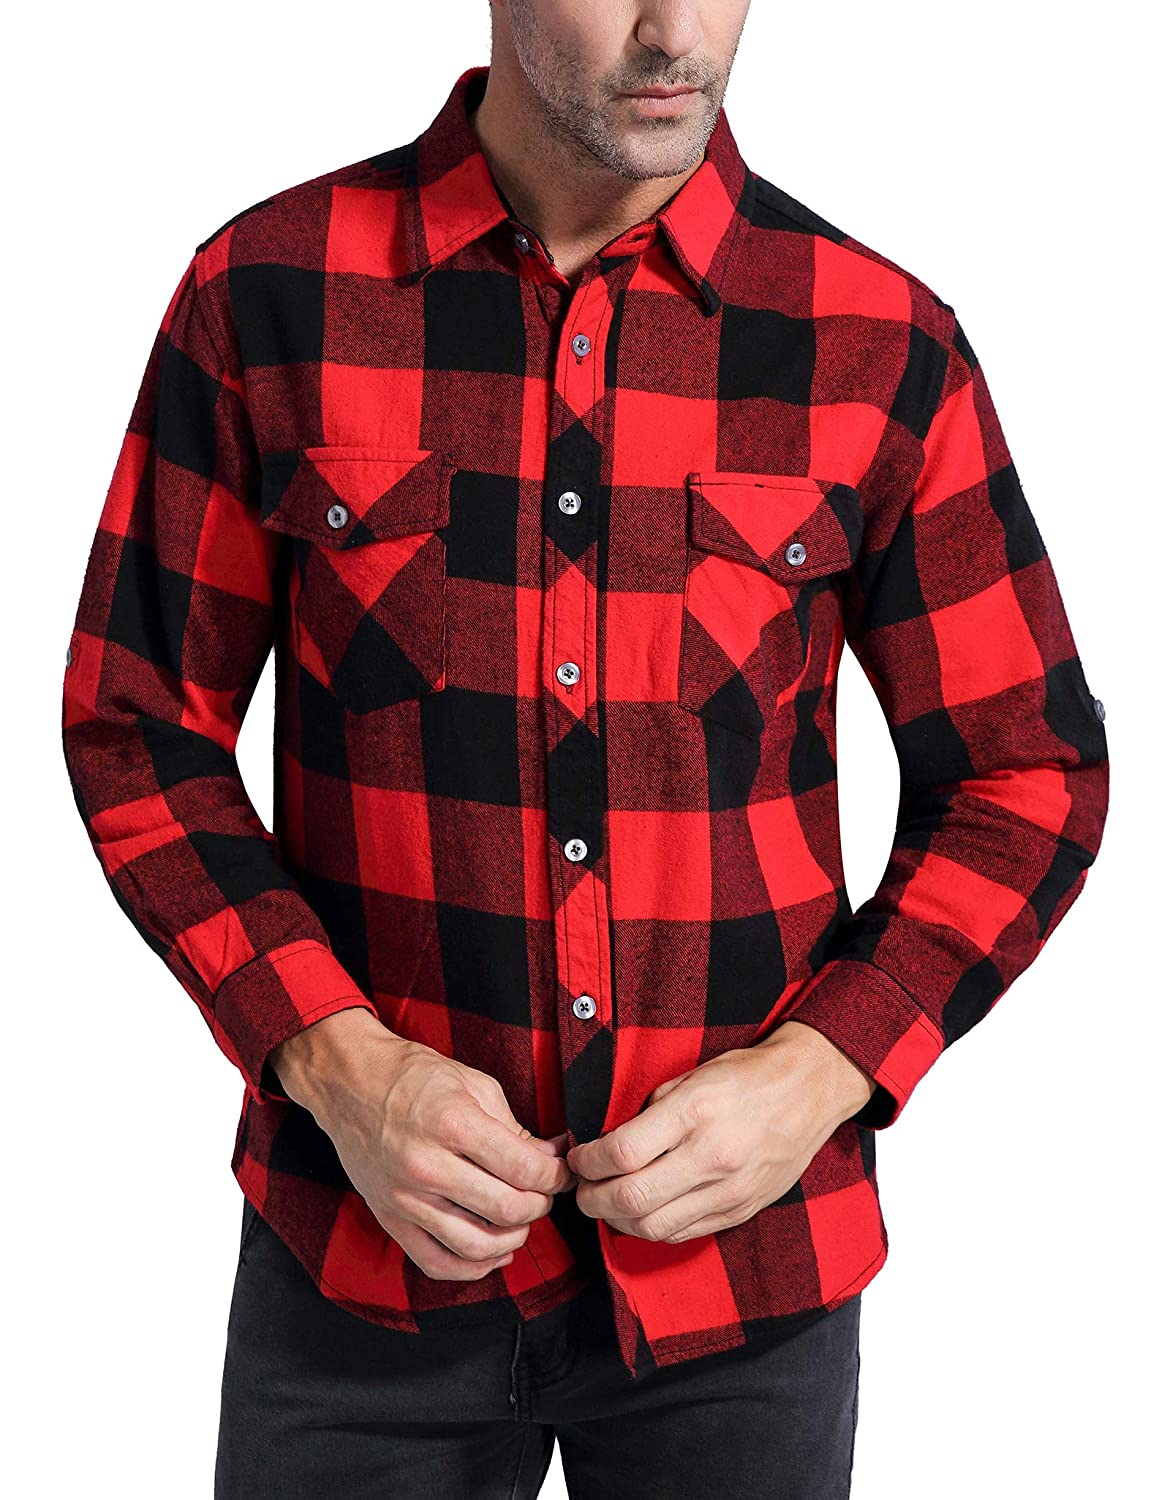 Vintage Shirts – Mens – Retro Shirts Coevals Club Mens Long Sleeve 100% Cotton Fleece Plaid Flannel Shirt $28.99 AT vintagedancer.com